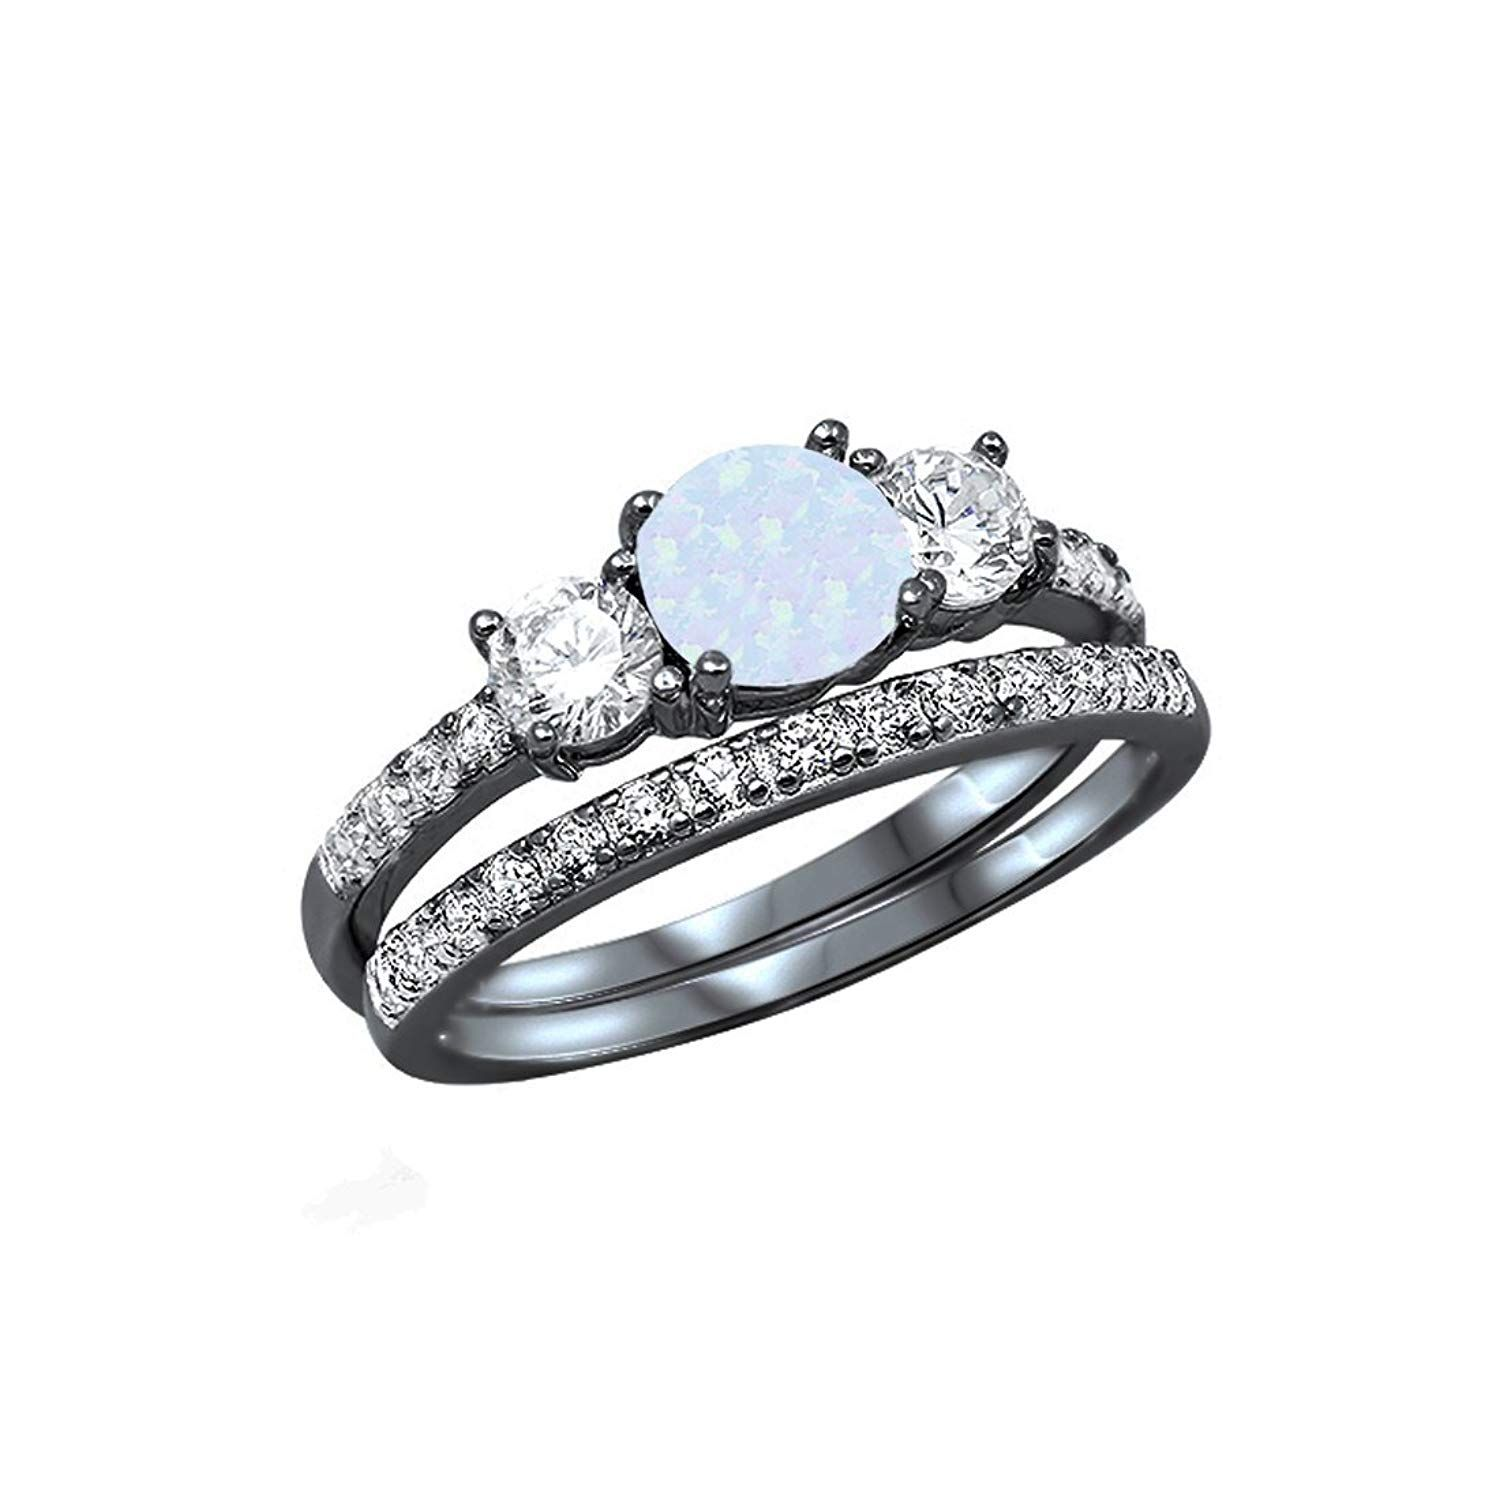 Blue Apple Co 3-Stone Wedding Bridal Set Ring Band 925 Sterling Silver